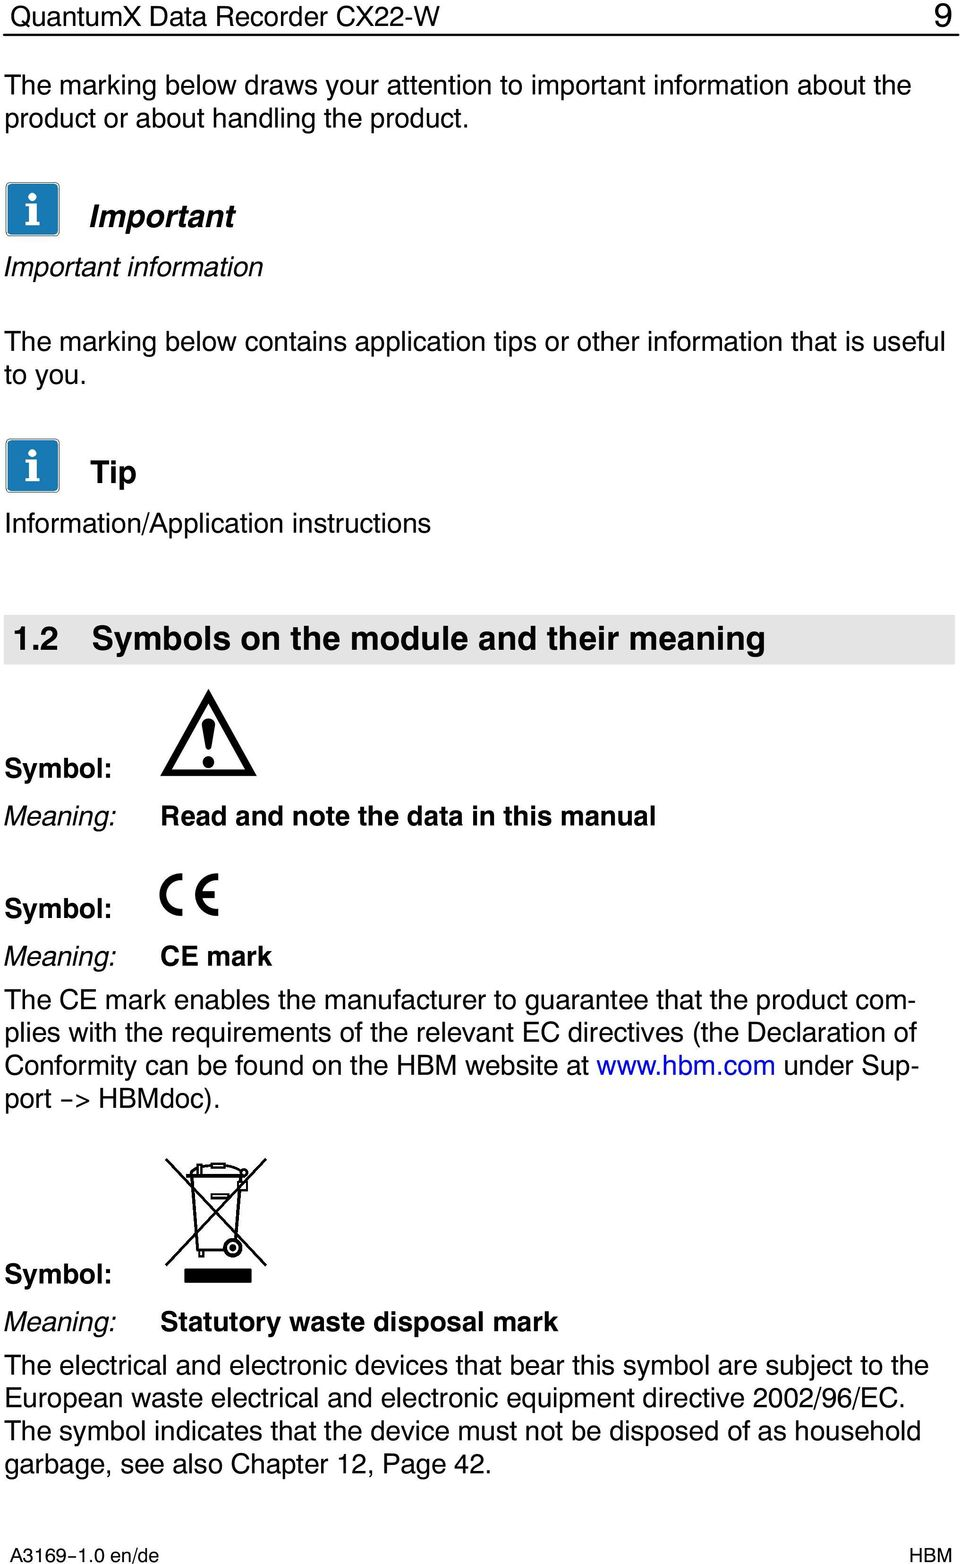 2 Symbols on the module and their meaning Symbol: Meaning: Read and note the data in this manual Symbol: Meaning: CE mark The CE mark enables the manufacturer to guarantee that the product complies